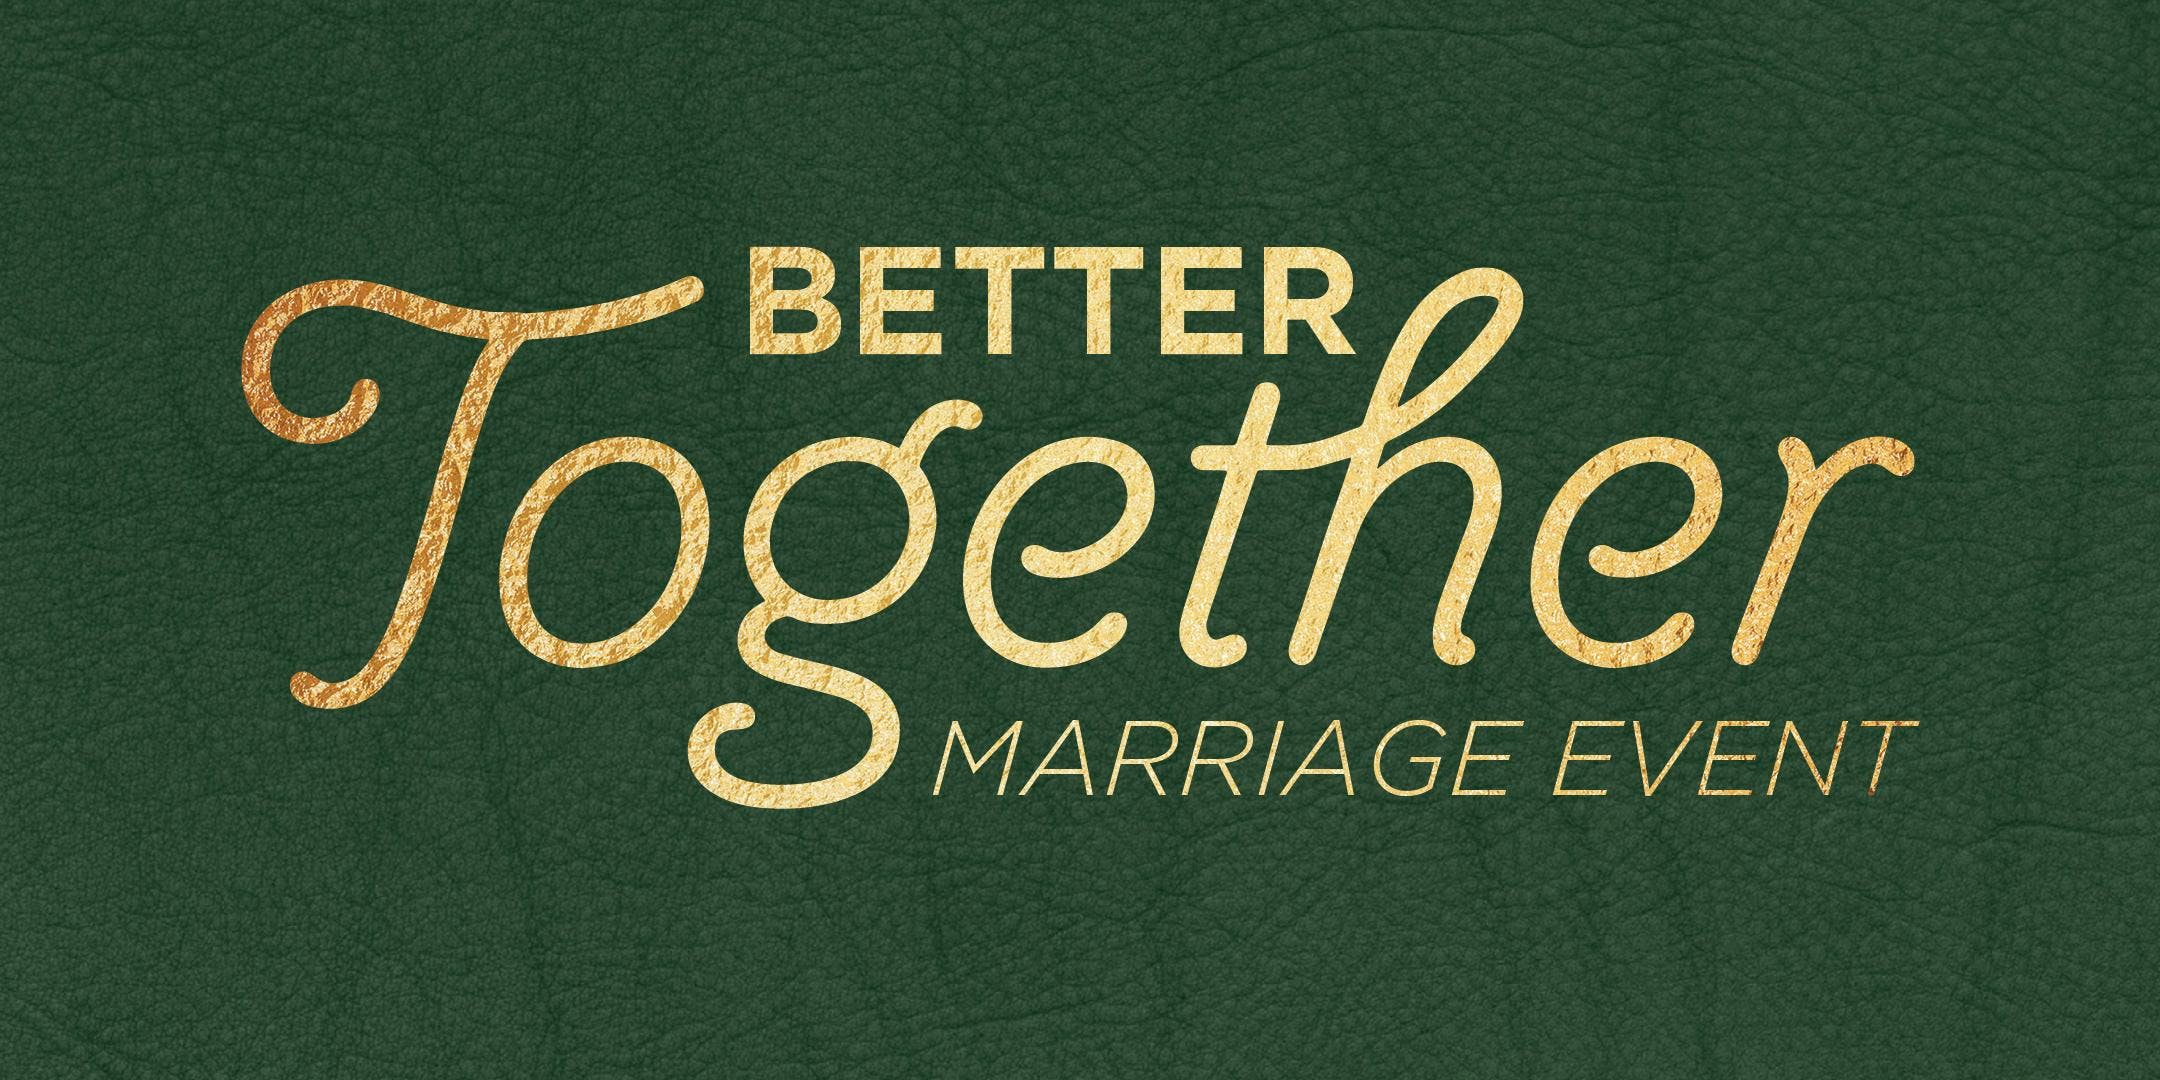 Better Together Marriage Event (Living Word Scottsdale)